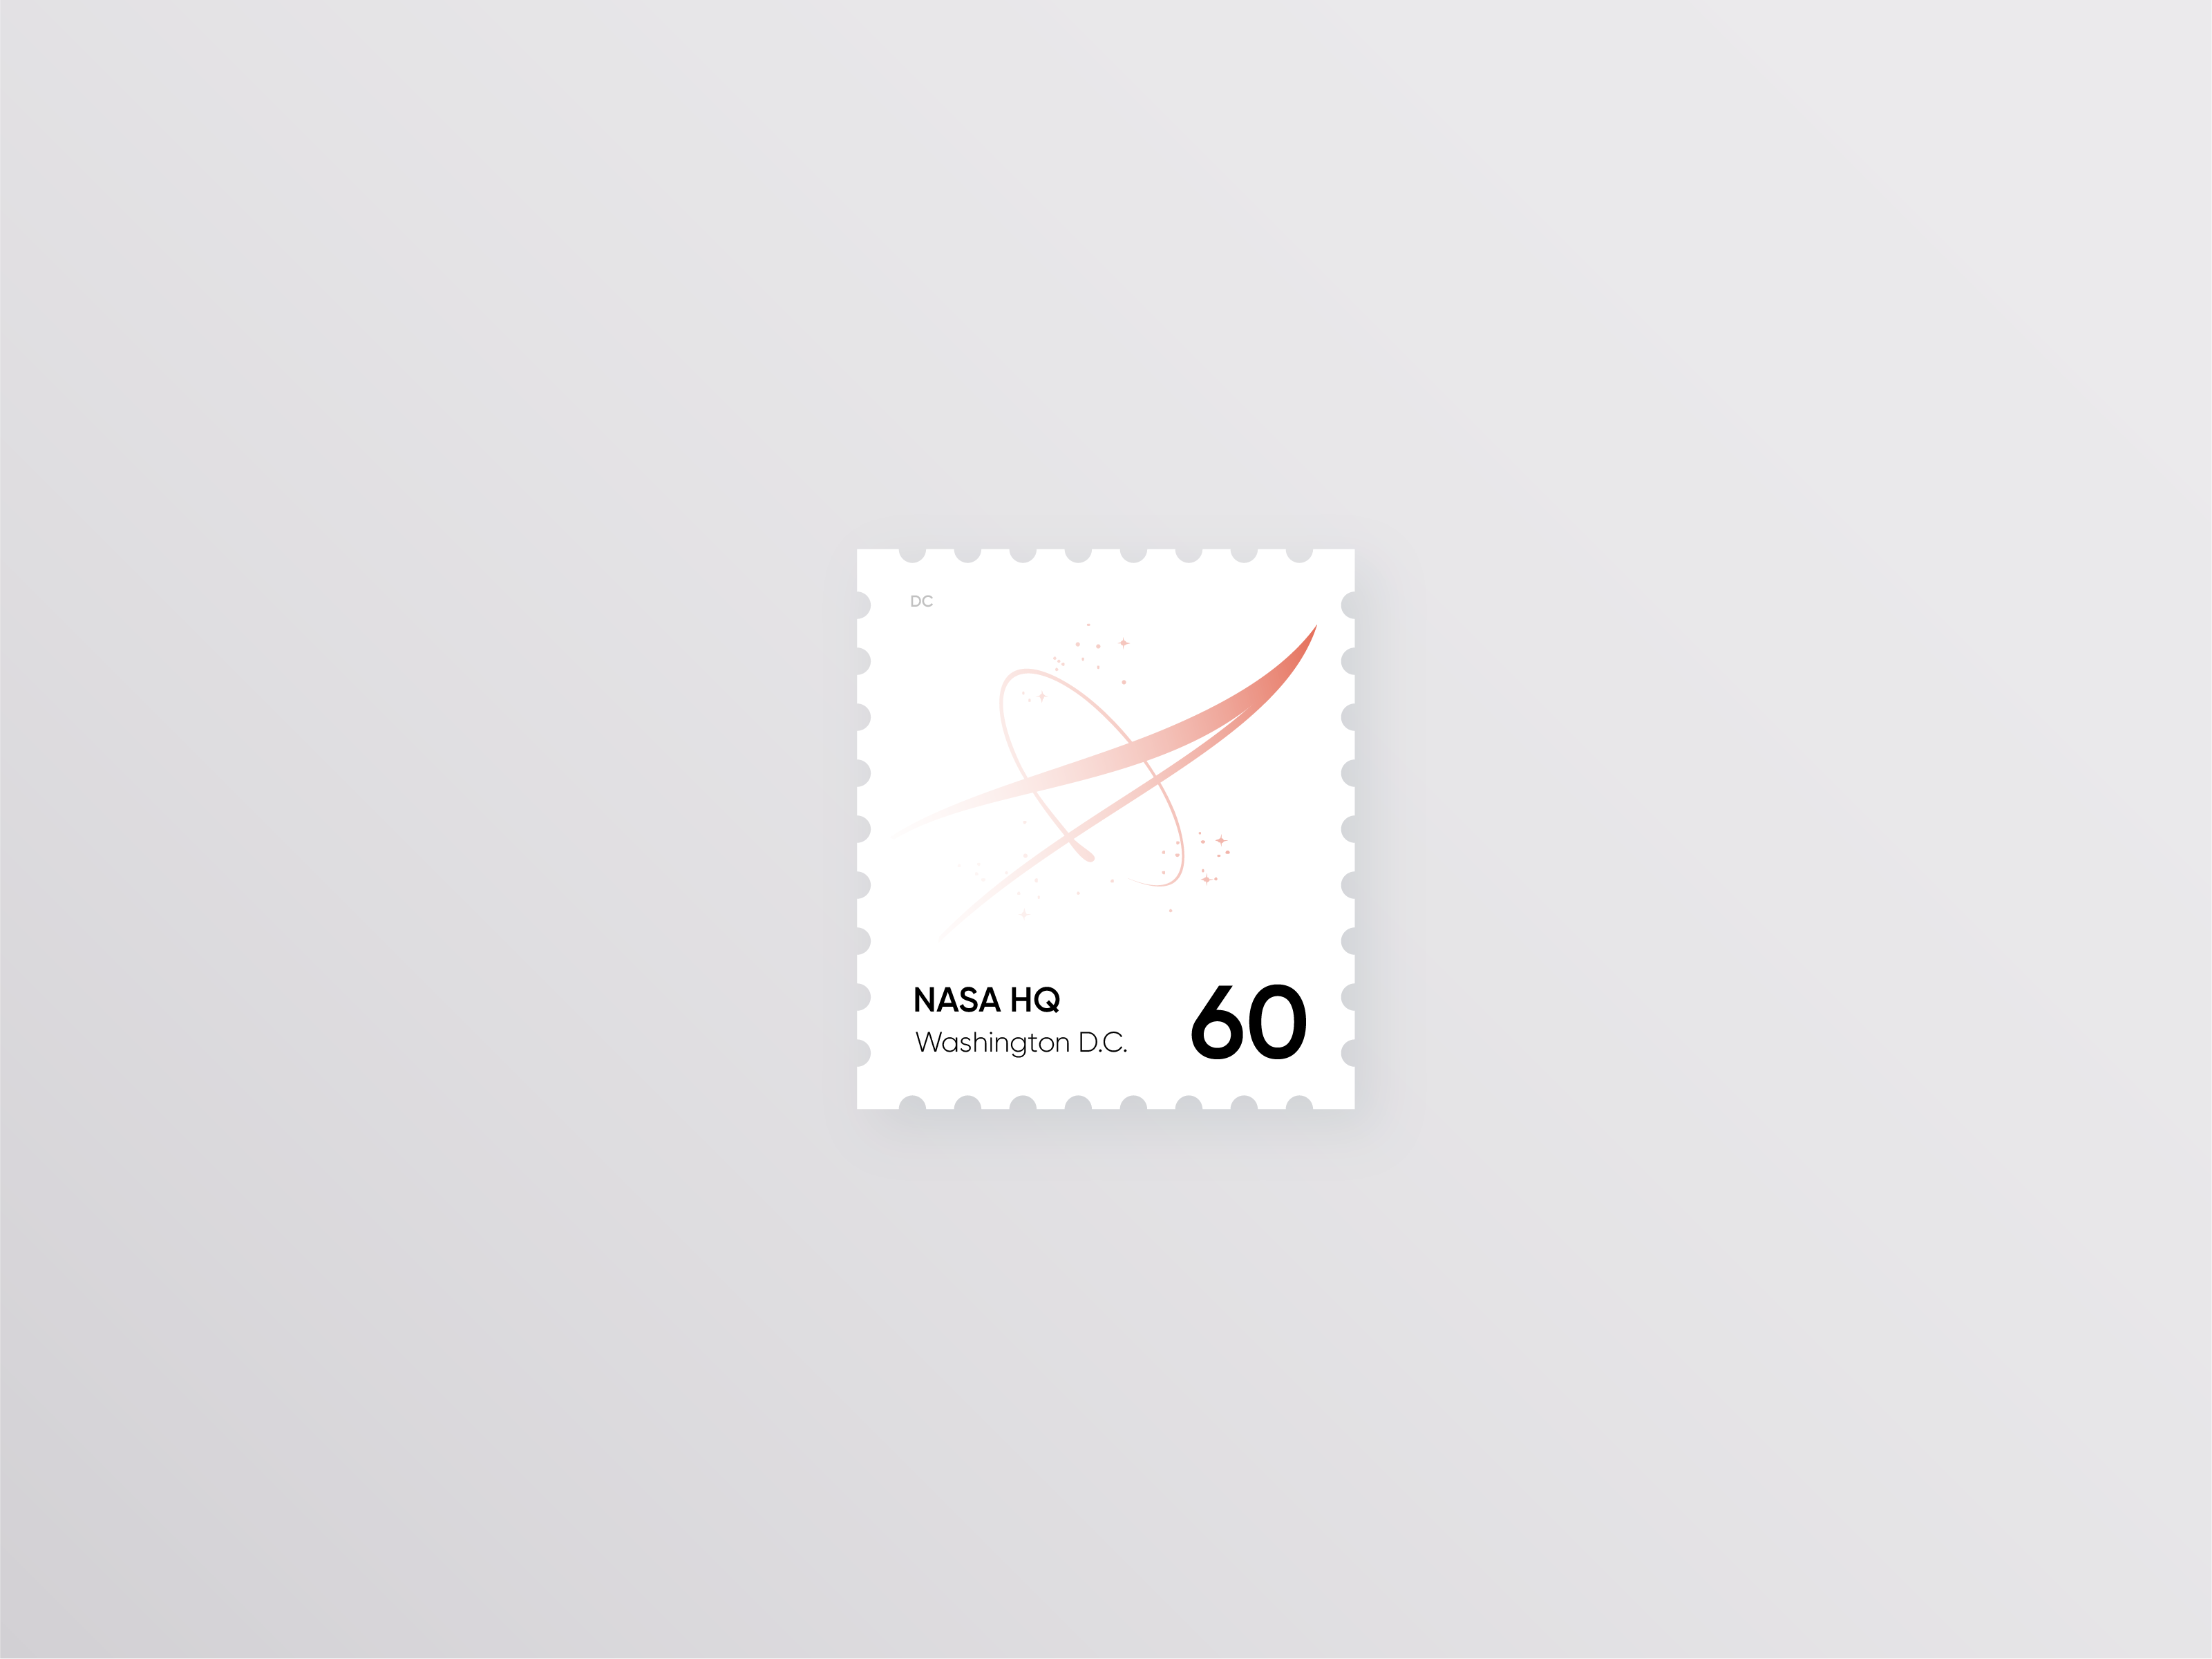 NASA Stamps Project Image 4